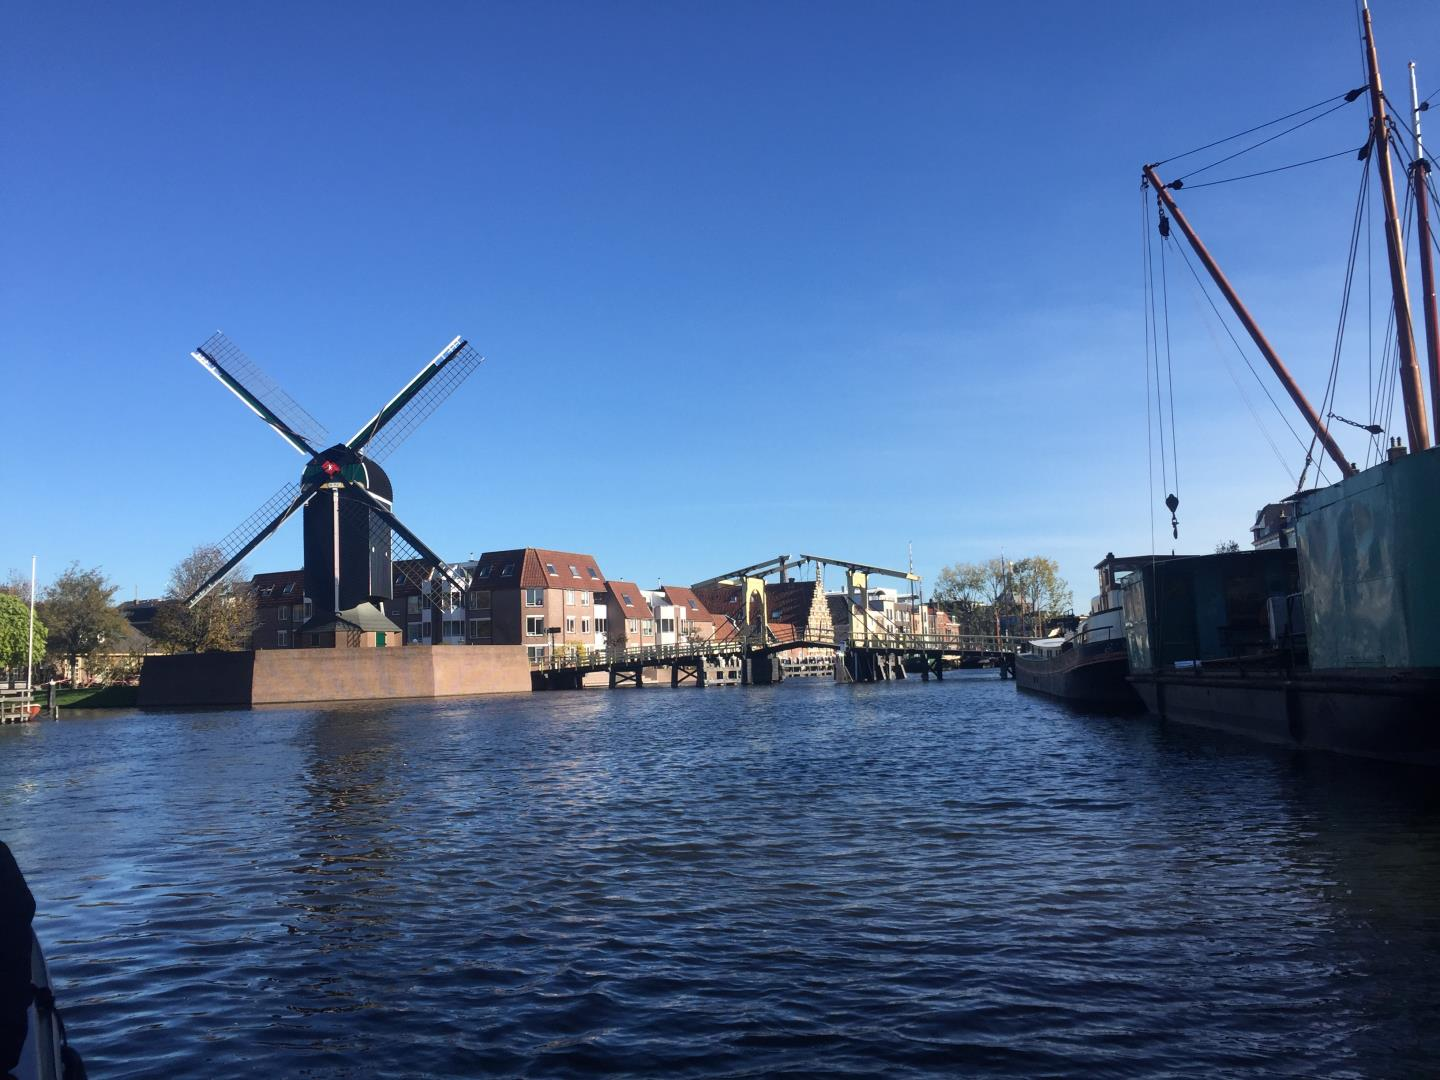 Holland is drop dead beautiful as witnessed by Snelgrove Travel in recent river cruise.